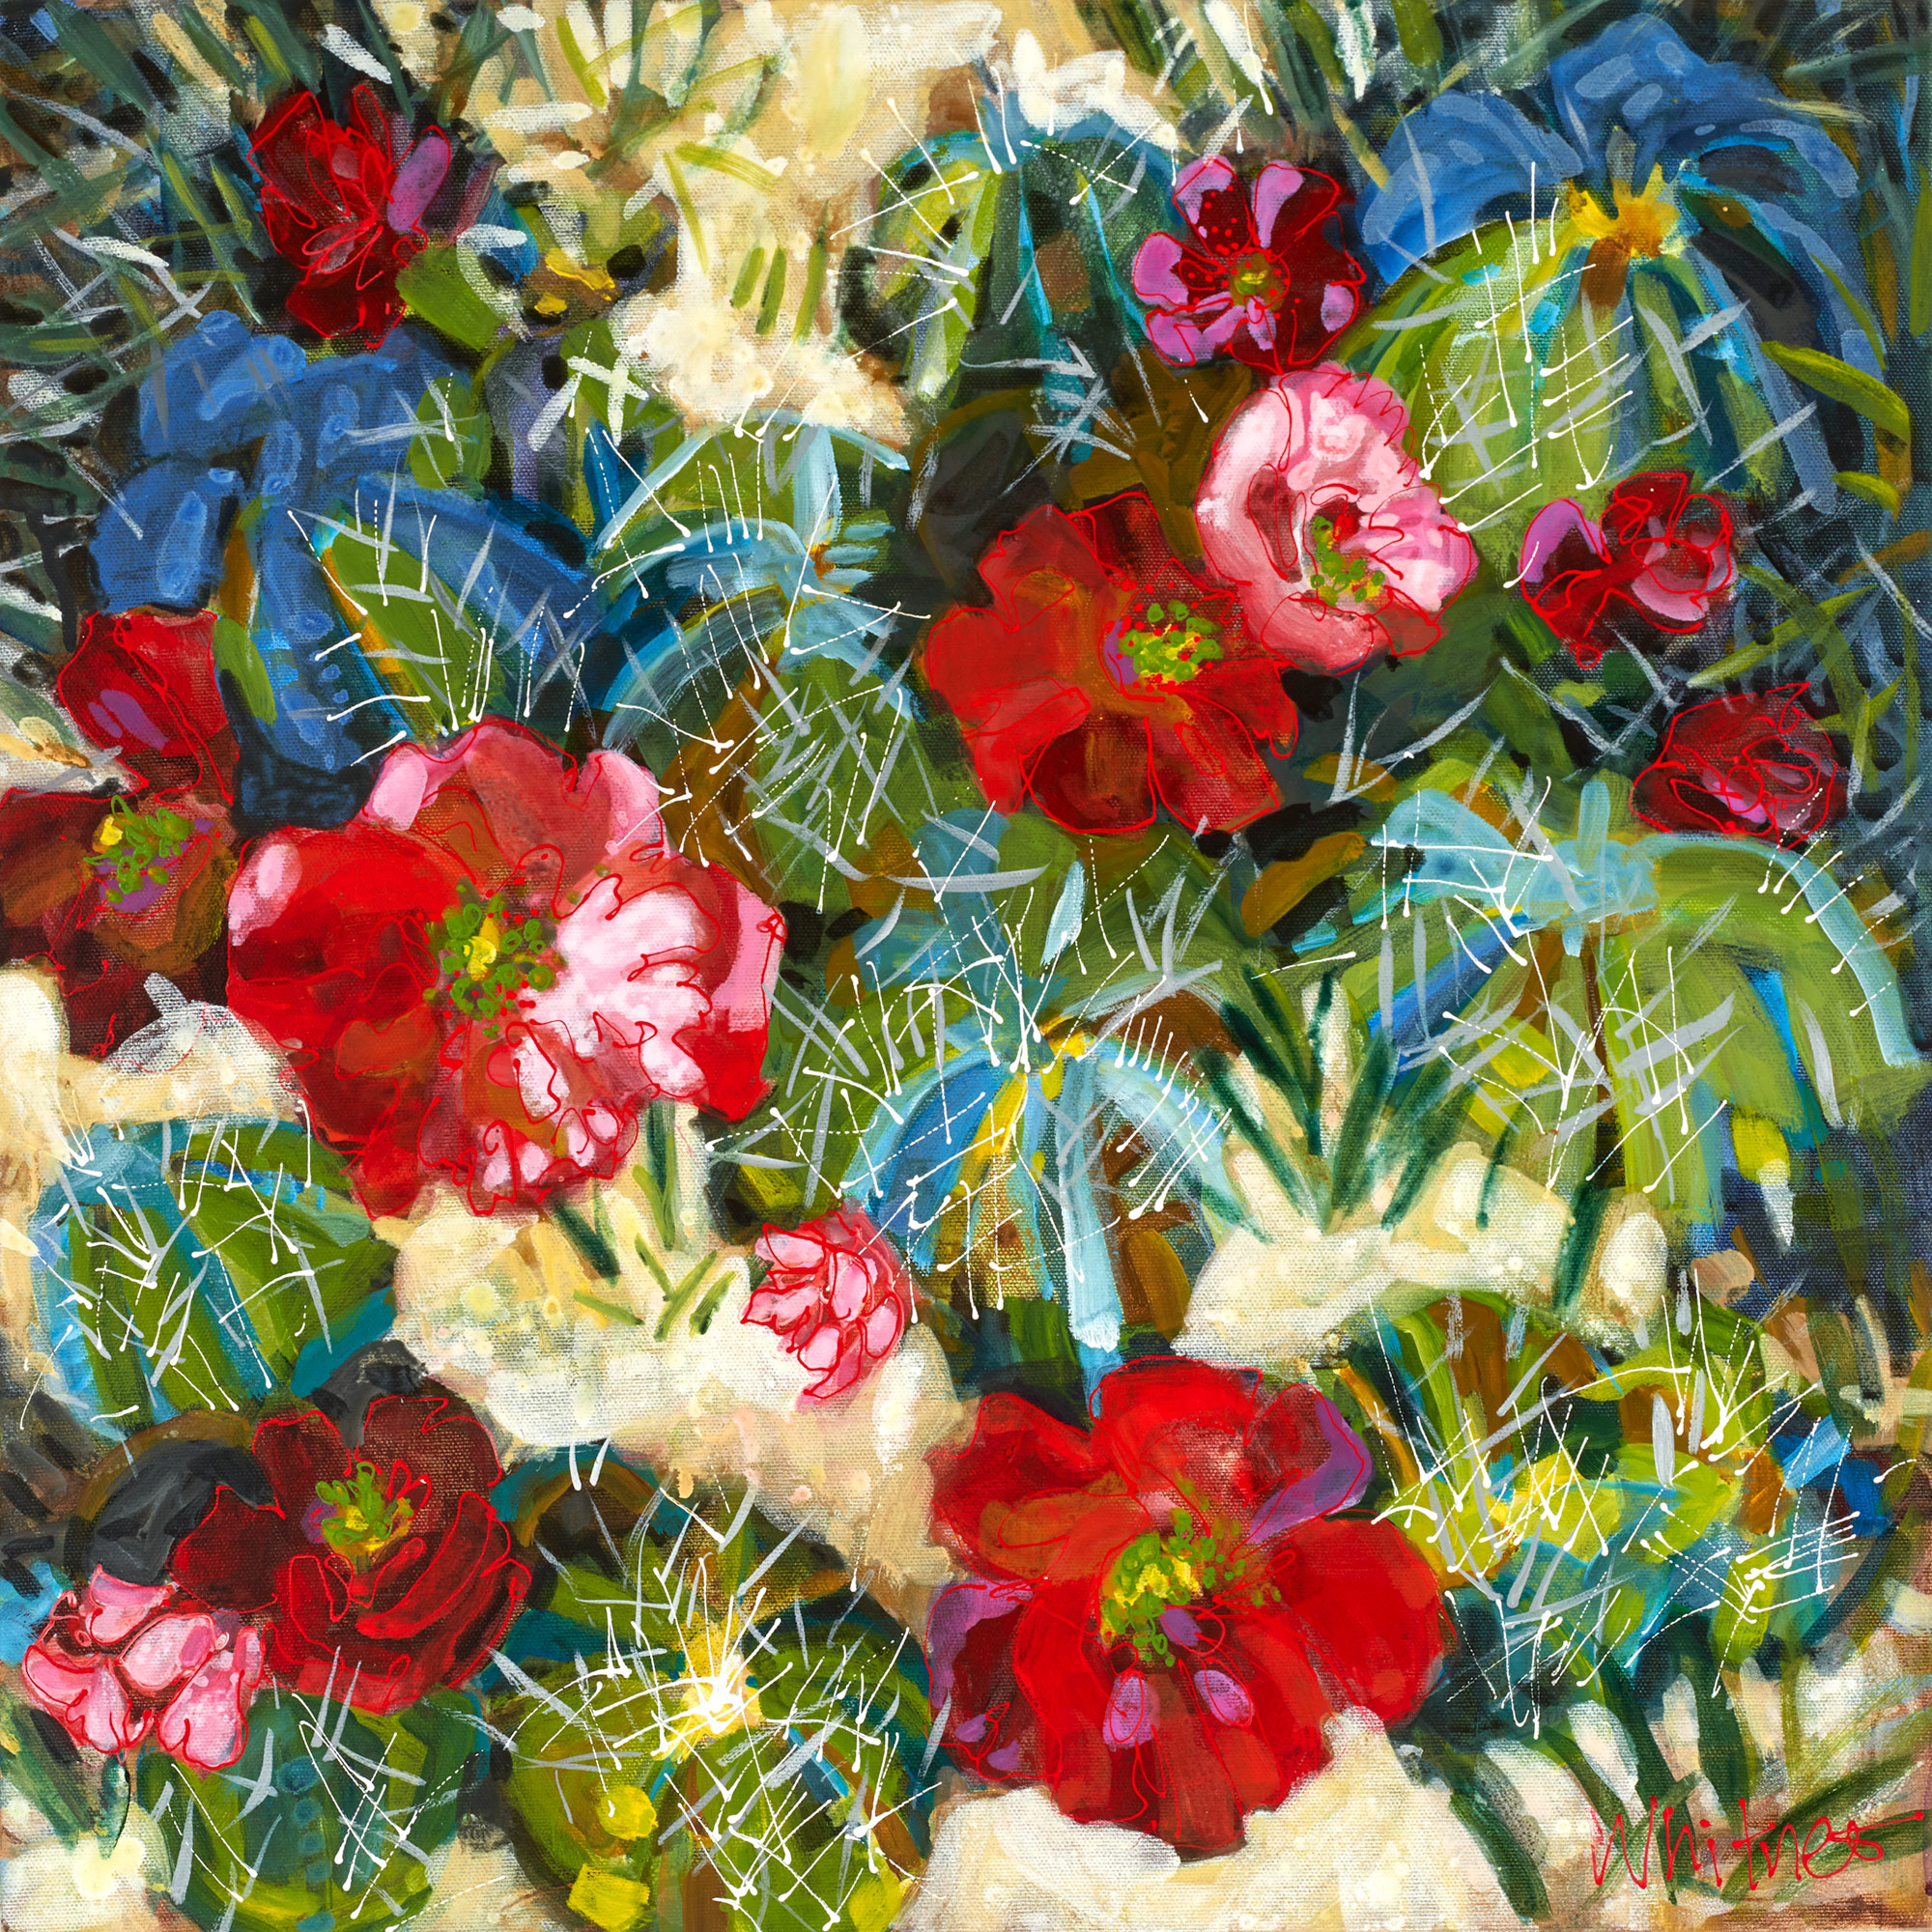 Lance-Whitner-Cactus-Flora-painting available at sundancecatalog.com